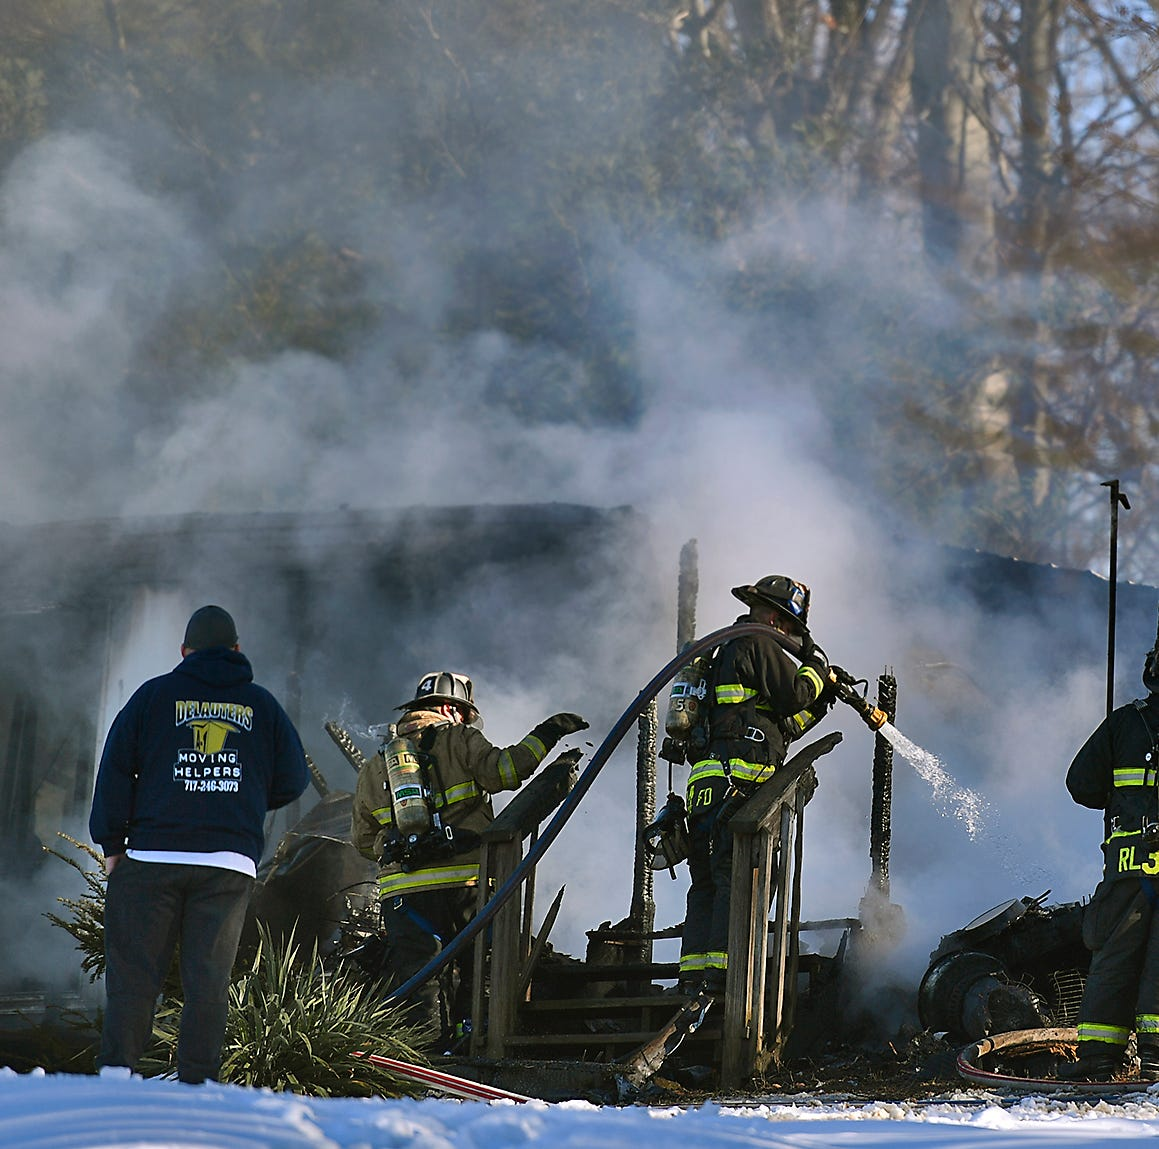 Fire rages through mobile home in Lower Windsor Twp.